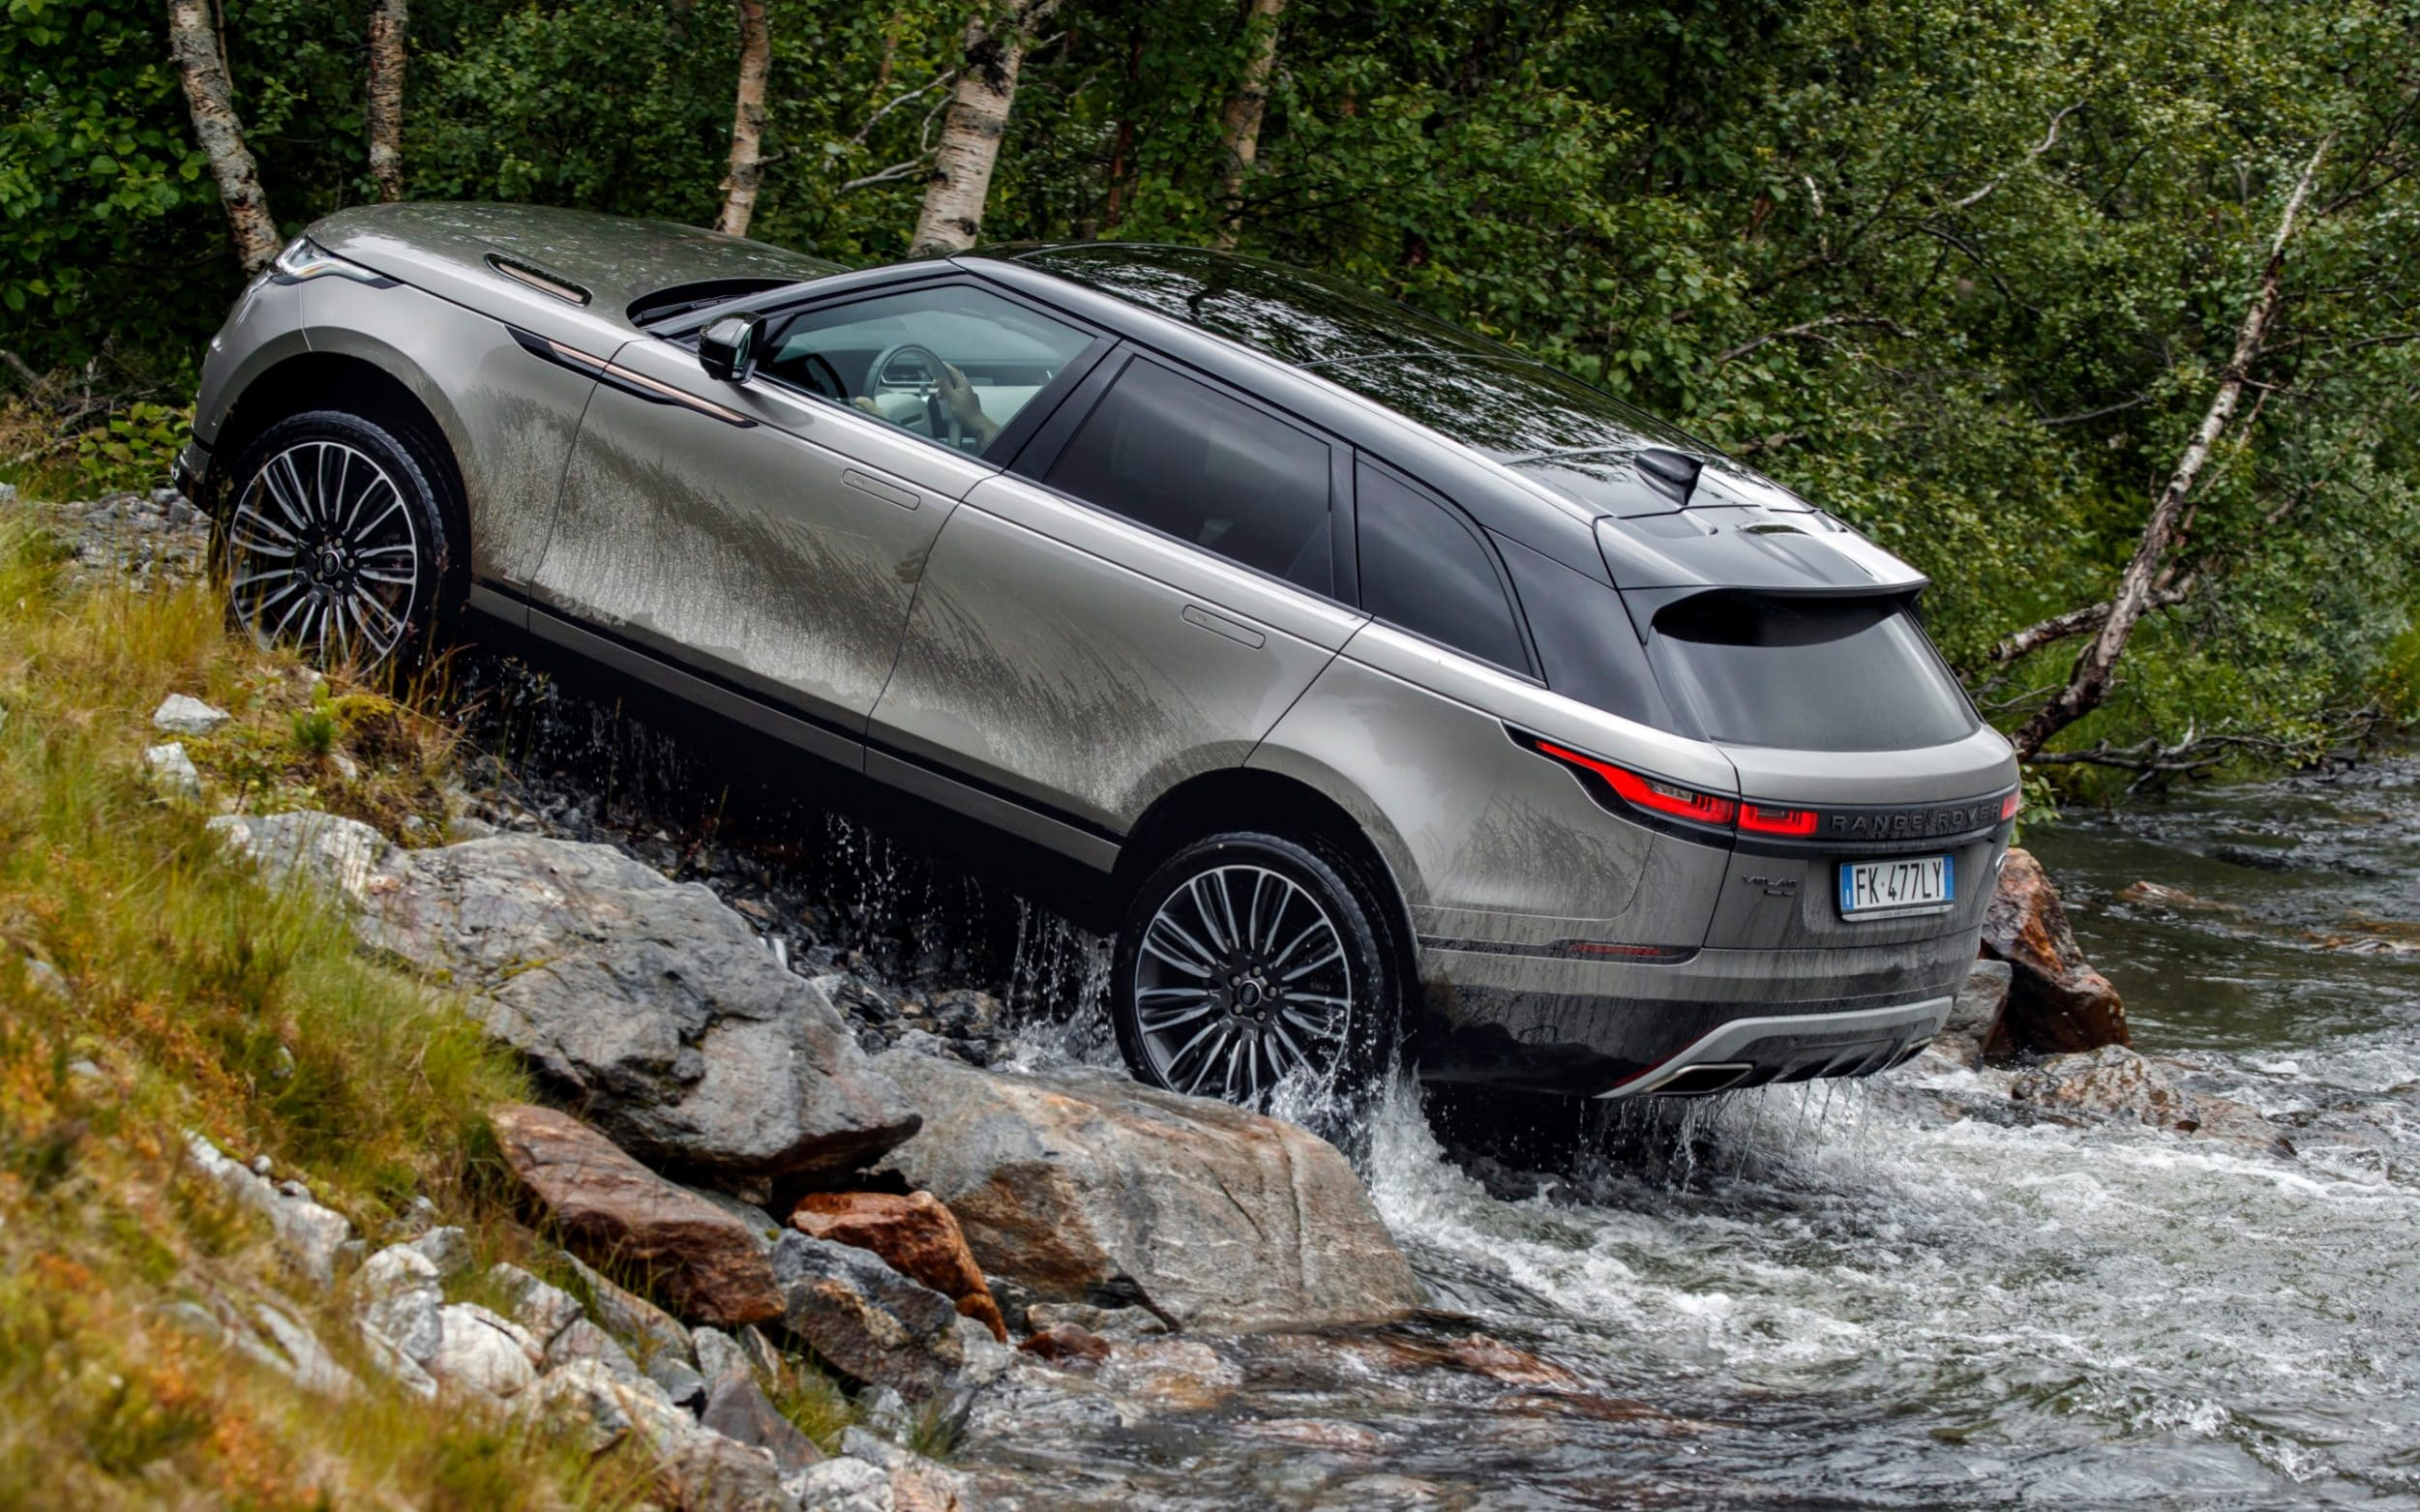 Range Rover Velar 2017 Review A Flawed But Beautiful